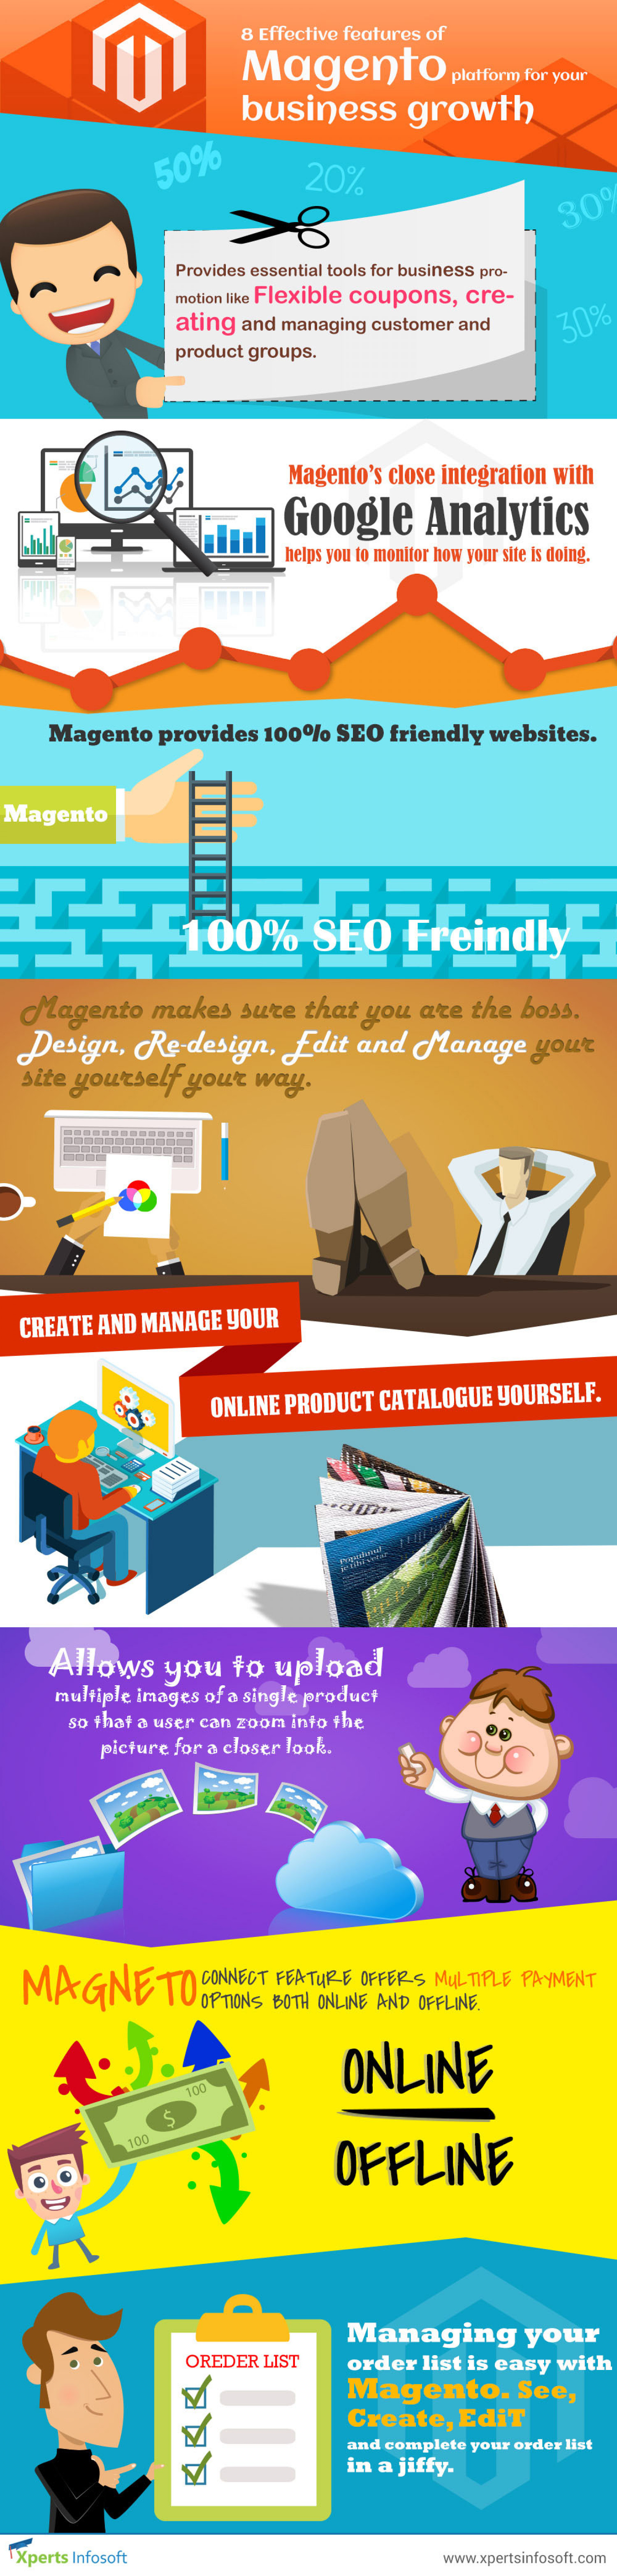 What makes Magento so popular among web designers? Infographic